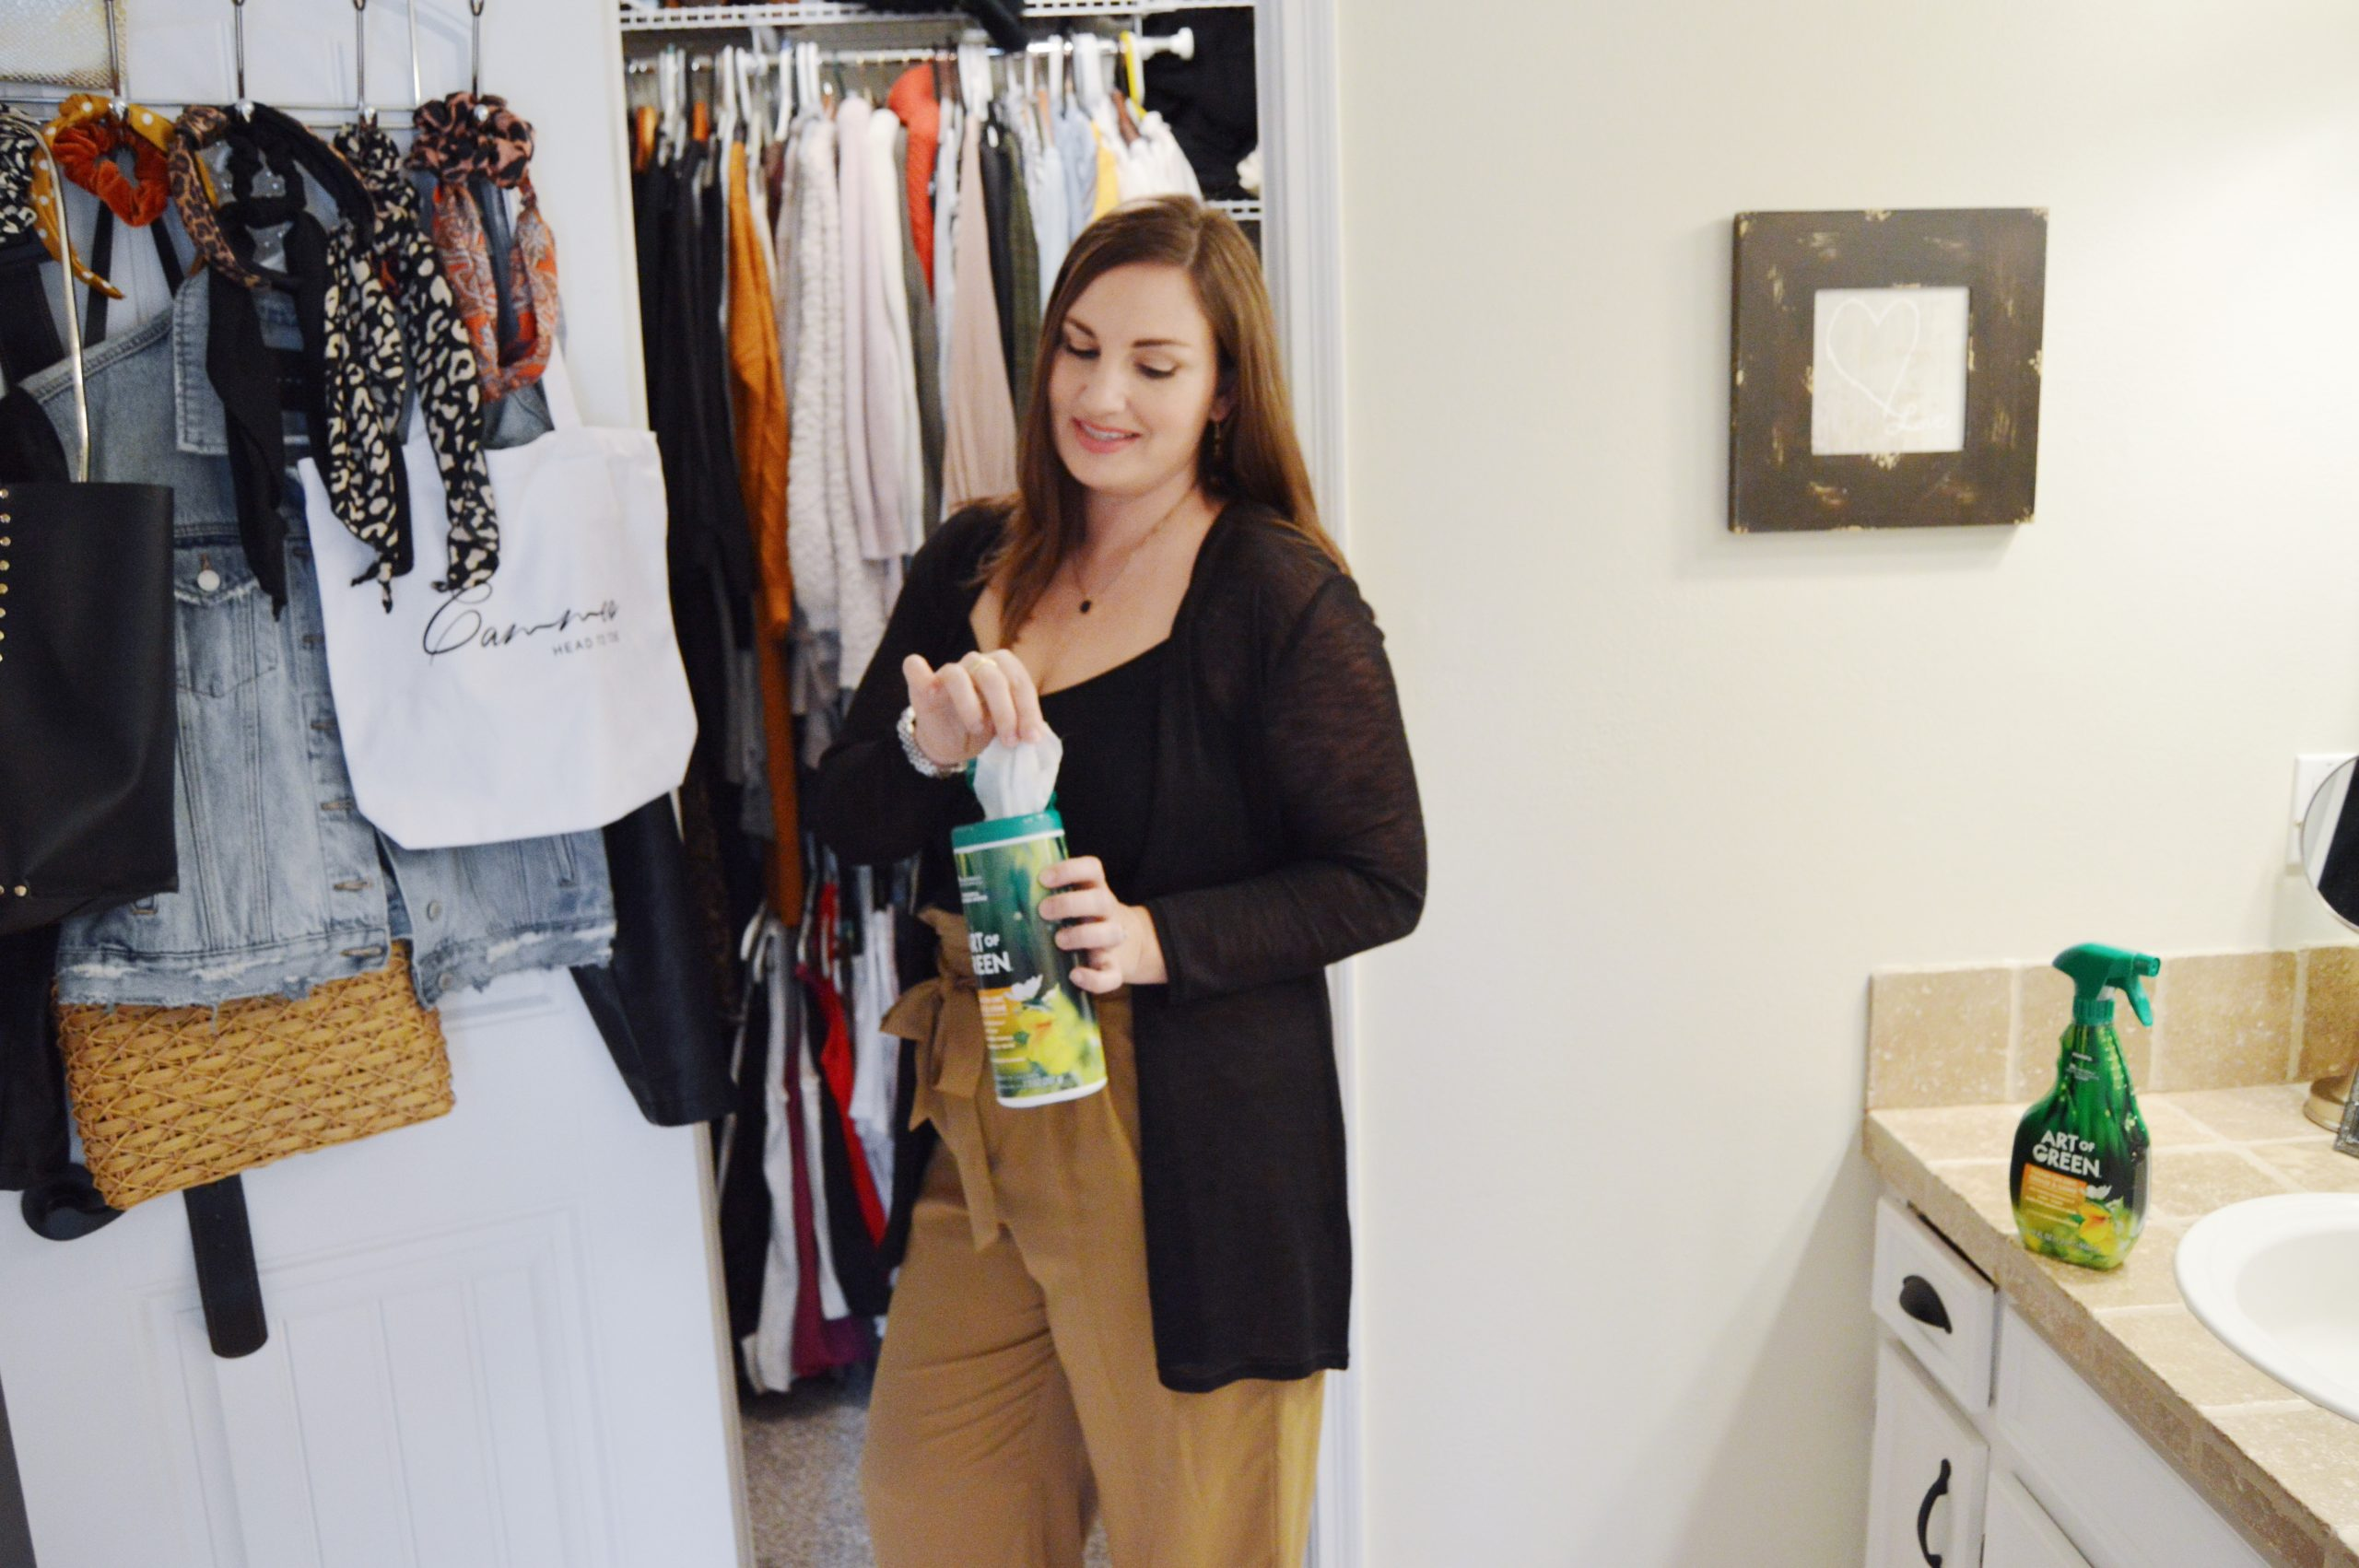 My Top 3 Tips for Cleaning Your Home & Wardrobe